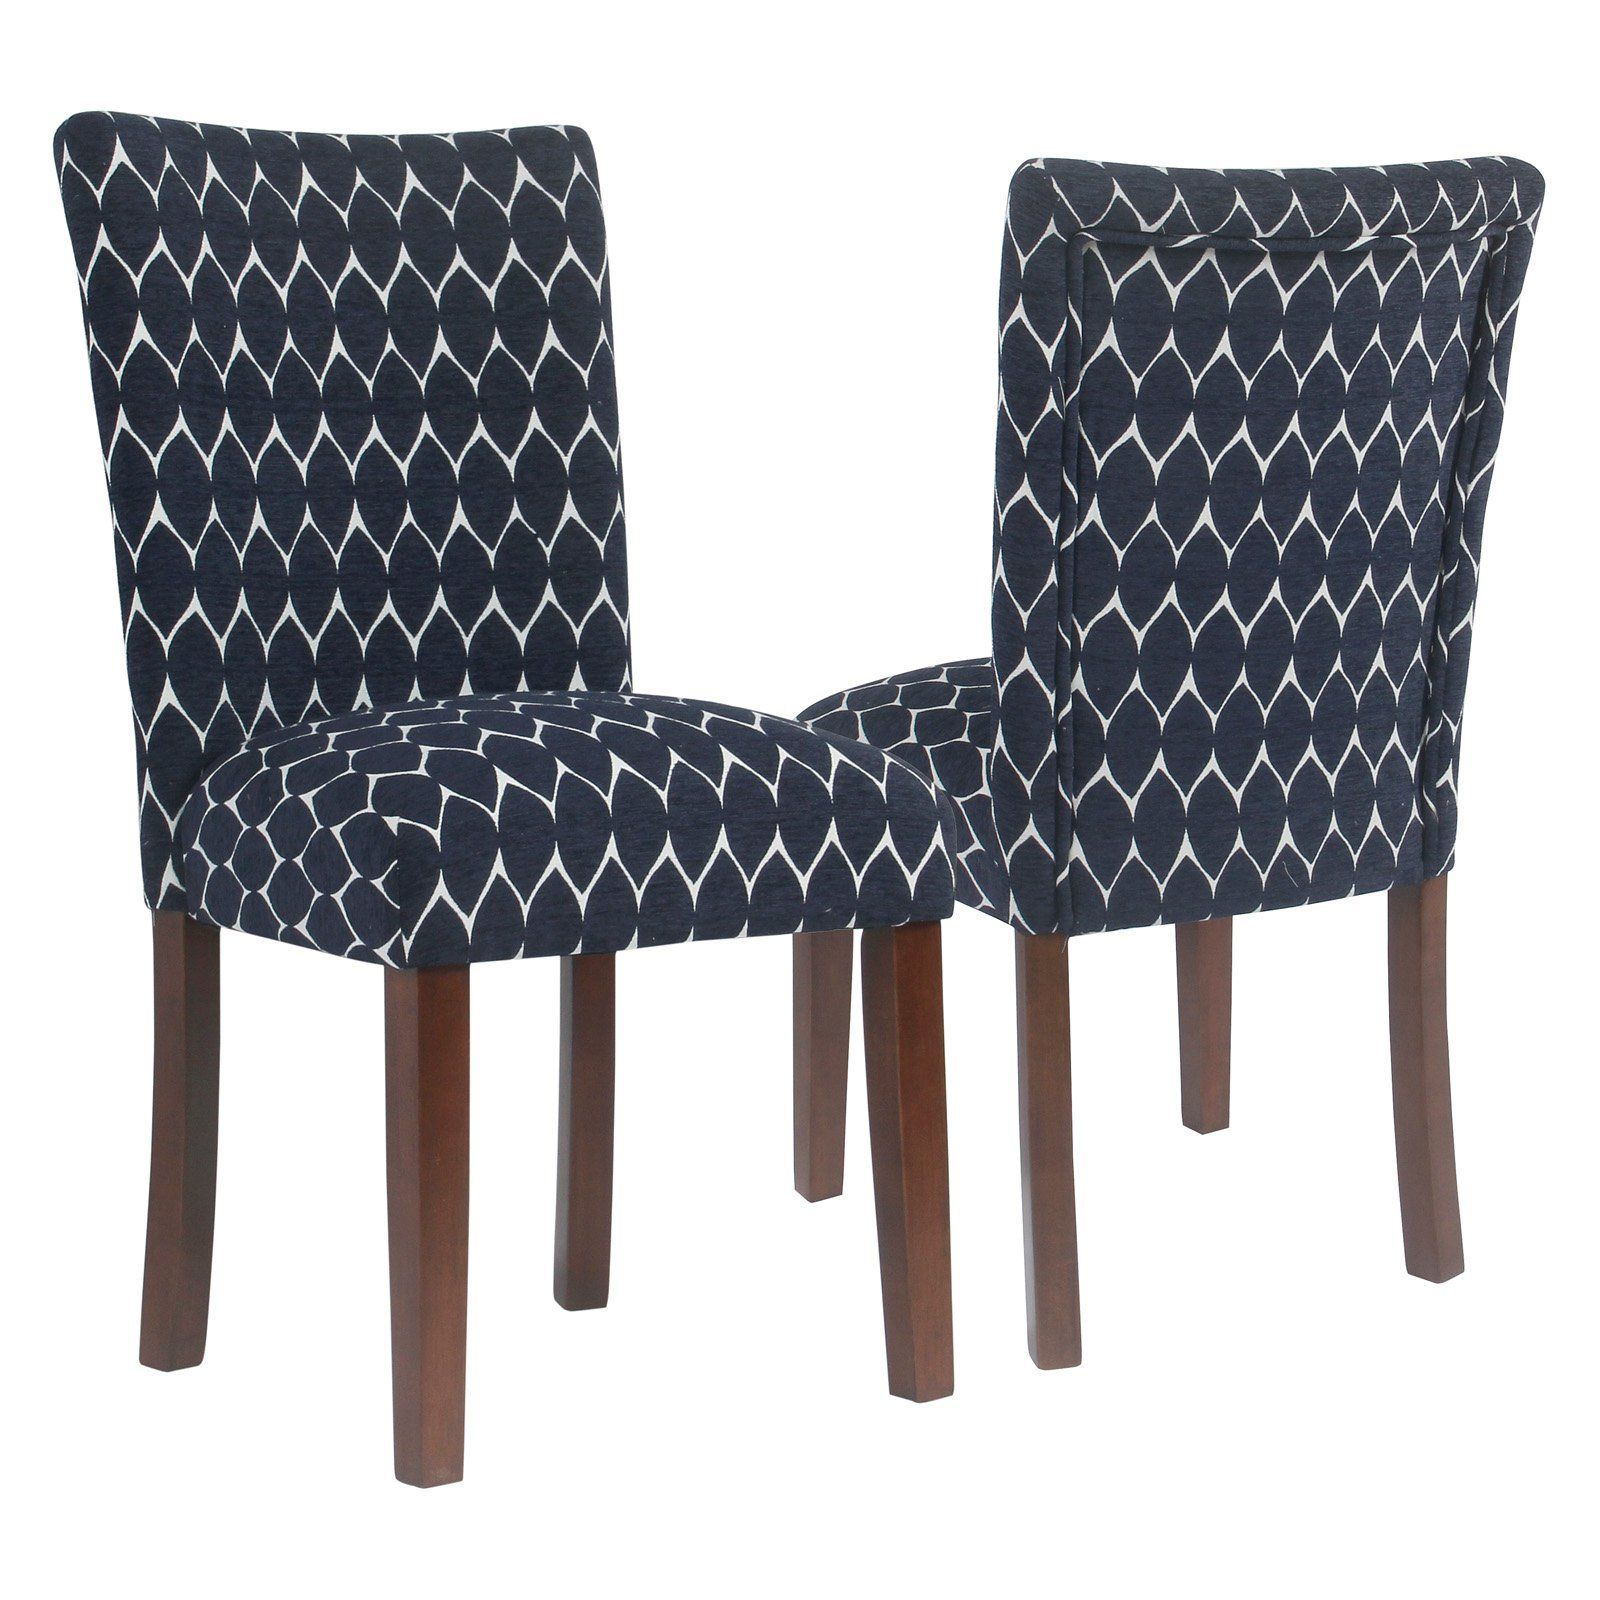 Homepop Textured Parsons Chair Set Of 2 Patterned Dining Chairs Dining Chairs Parsons Dining Chairs Parsons chairs set of 2